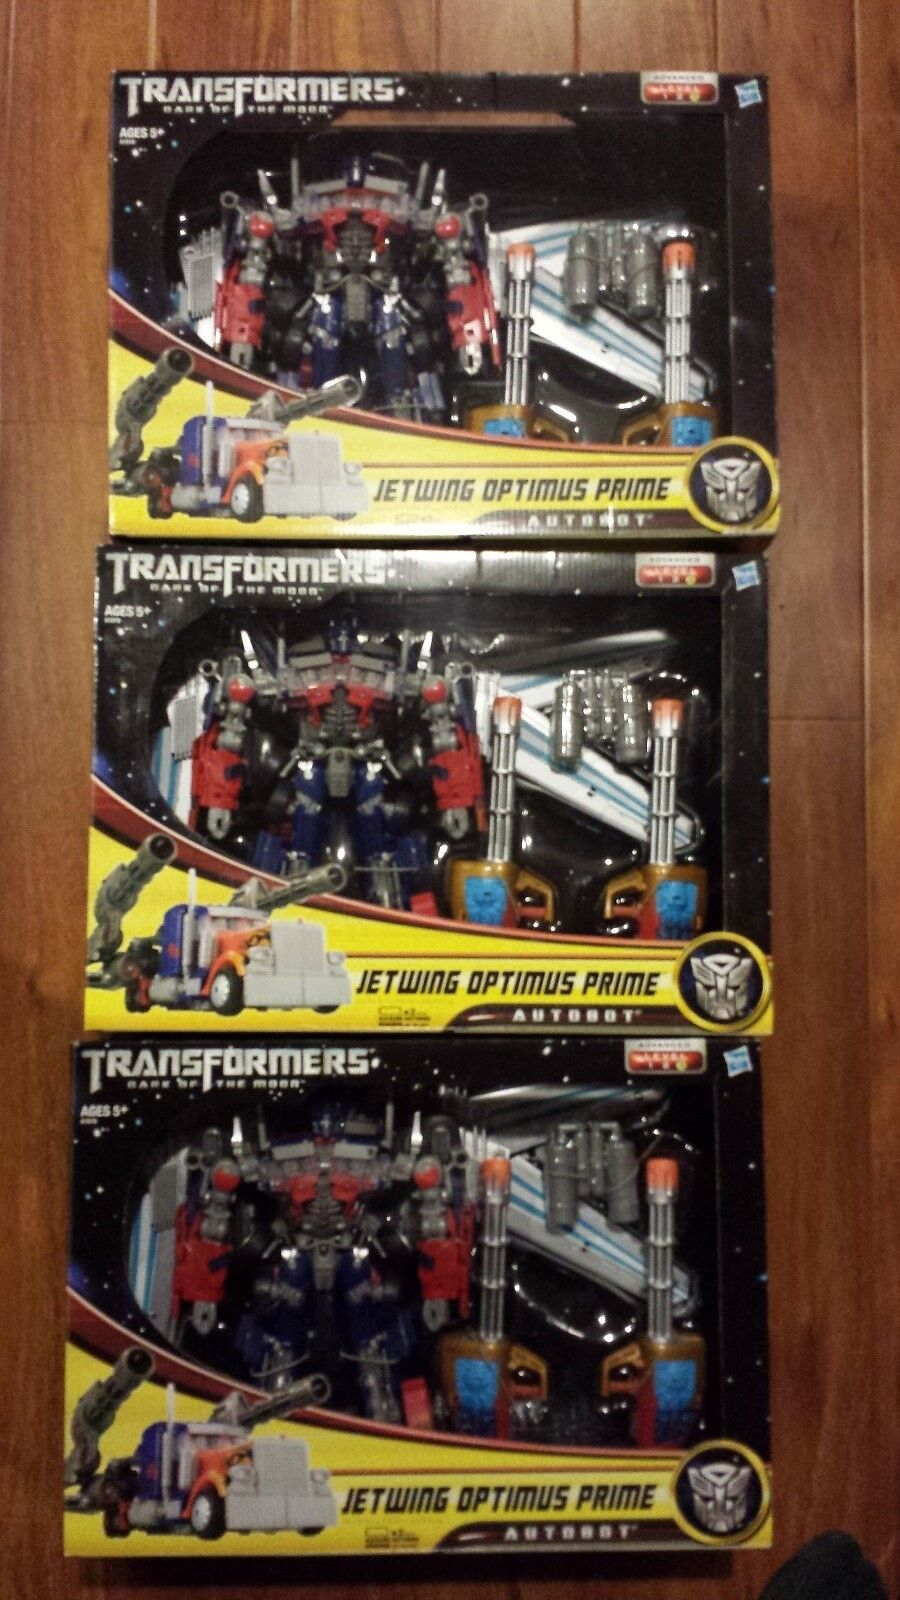 New Transformer Dark of the Moon Jetwing Optimus Prime